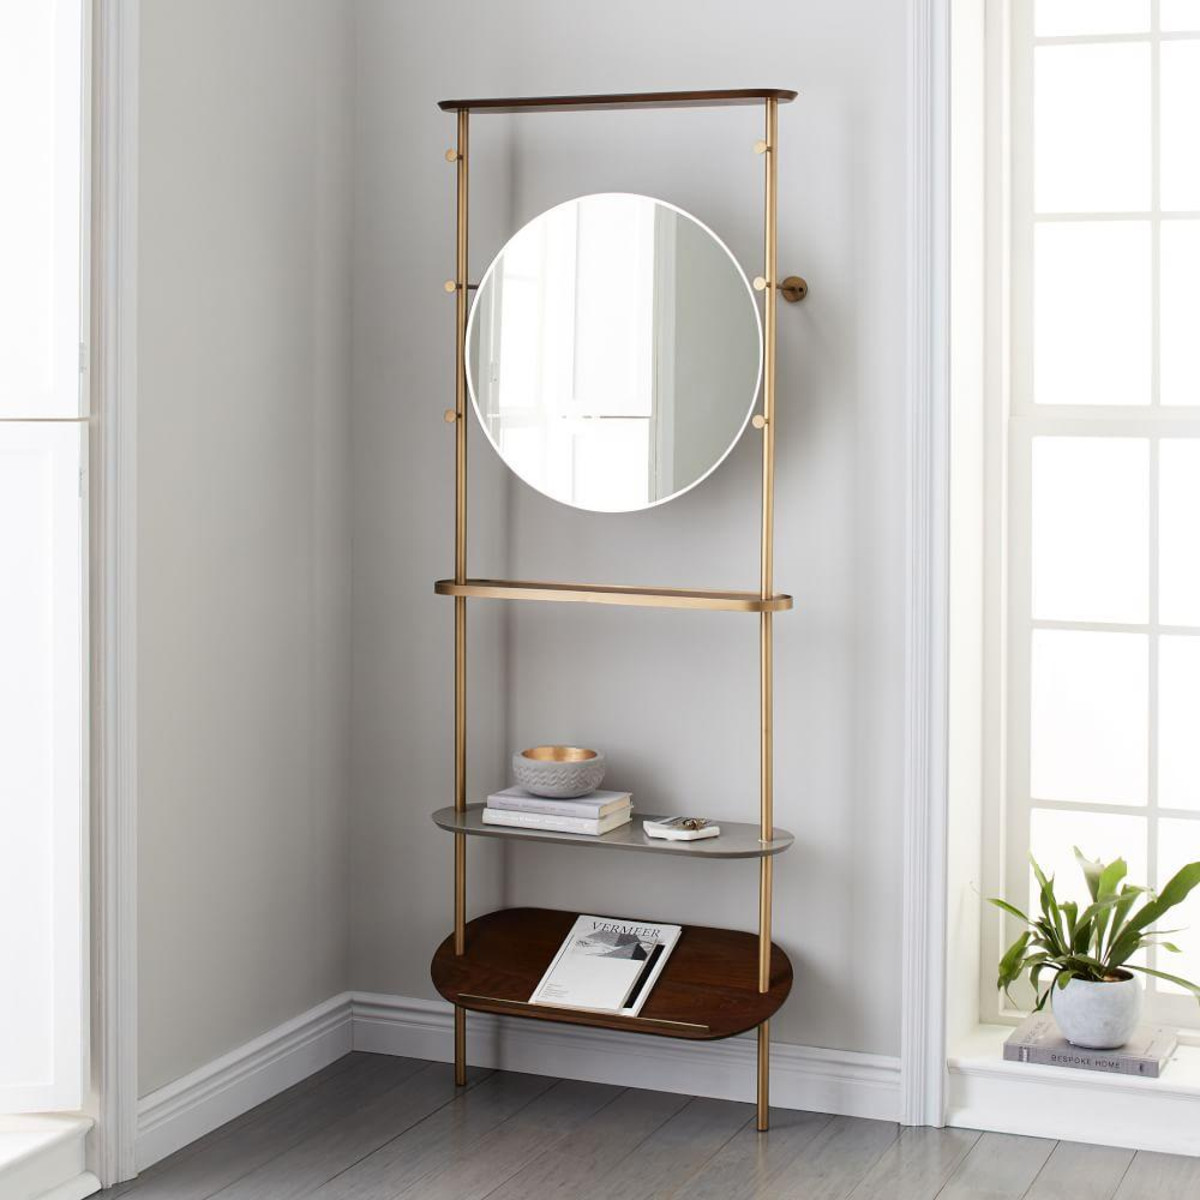 Entryway Mirror | Coat Rack with Mirror and Shelf | Entranceway Furniture